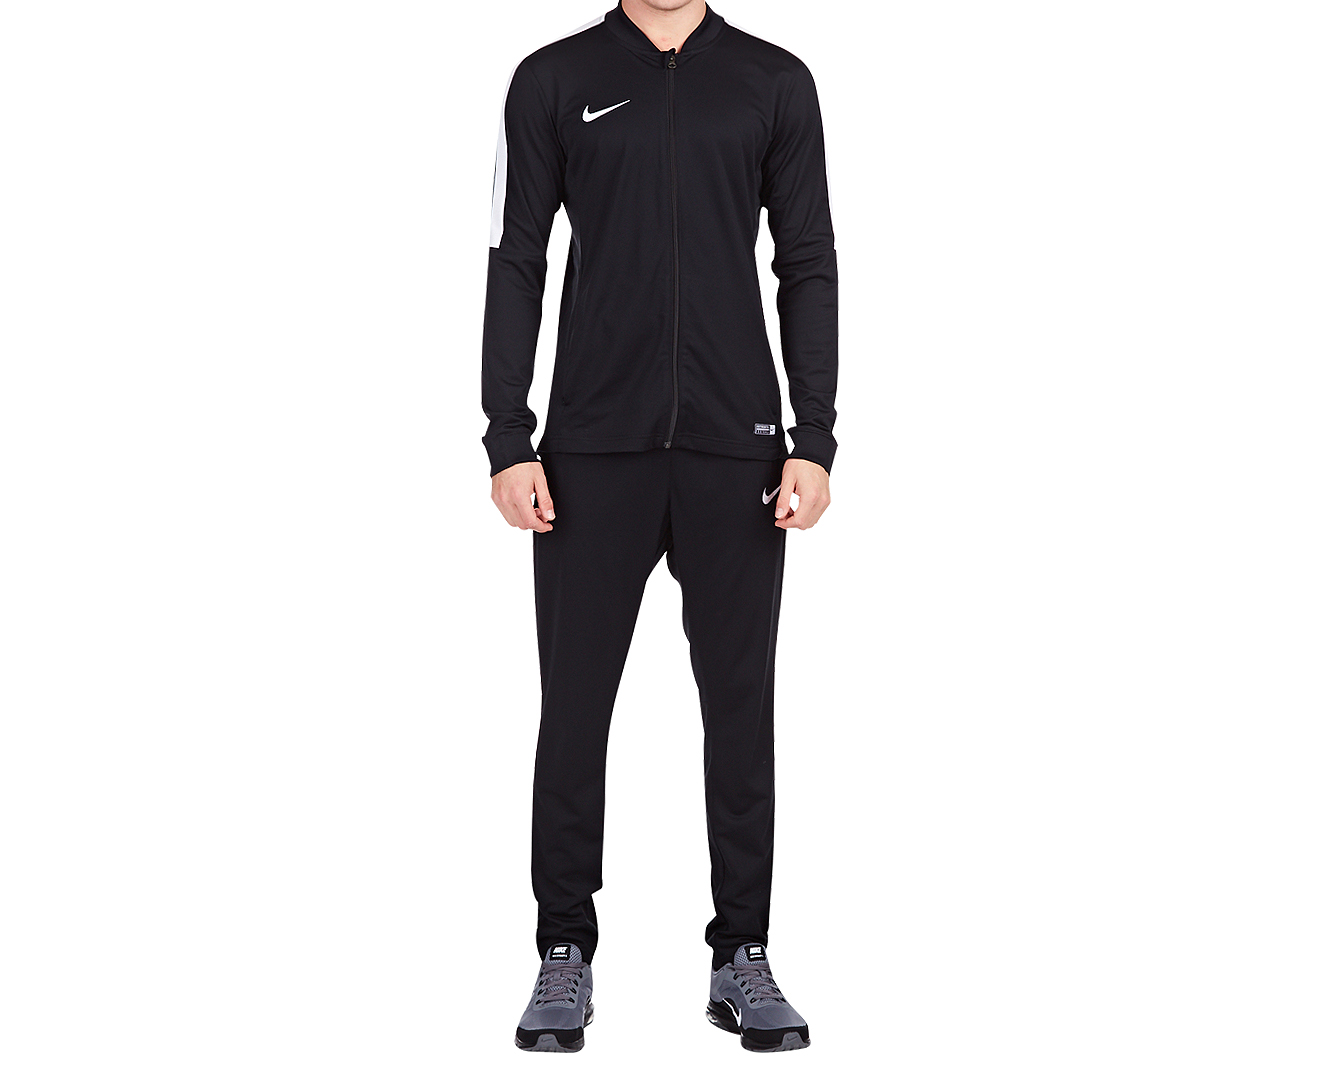 Nike Men s Academy 16 Knit Tracksuit - Black White  0547d568a99e